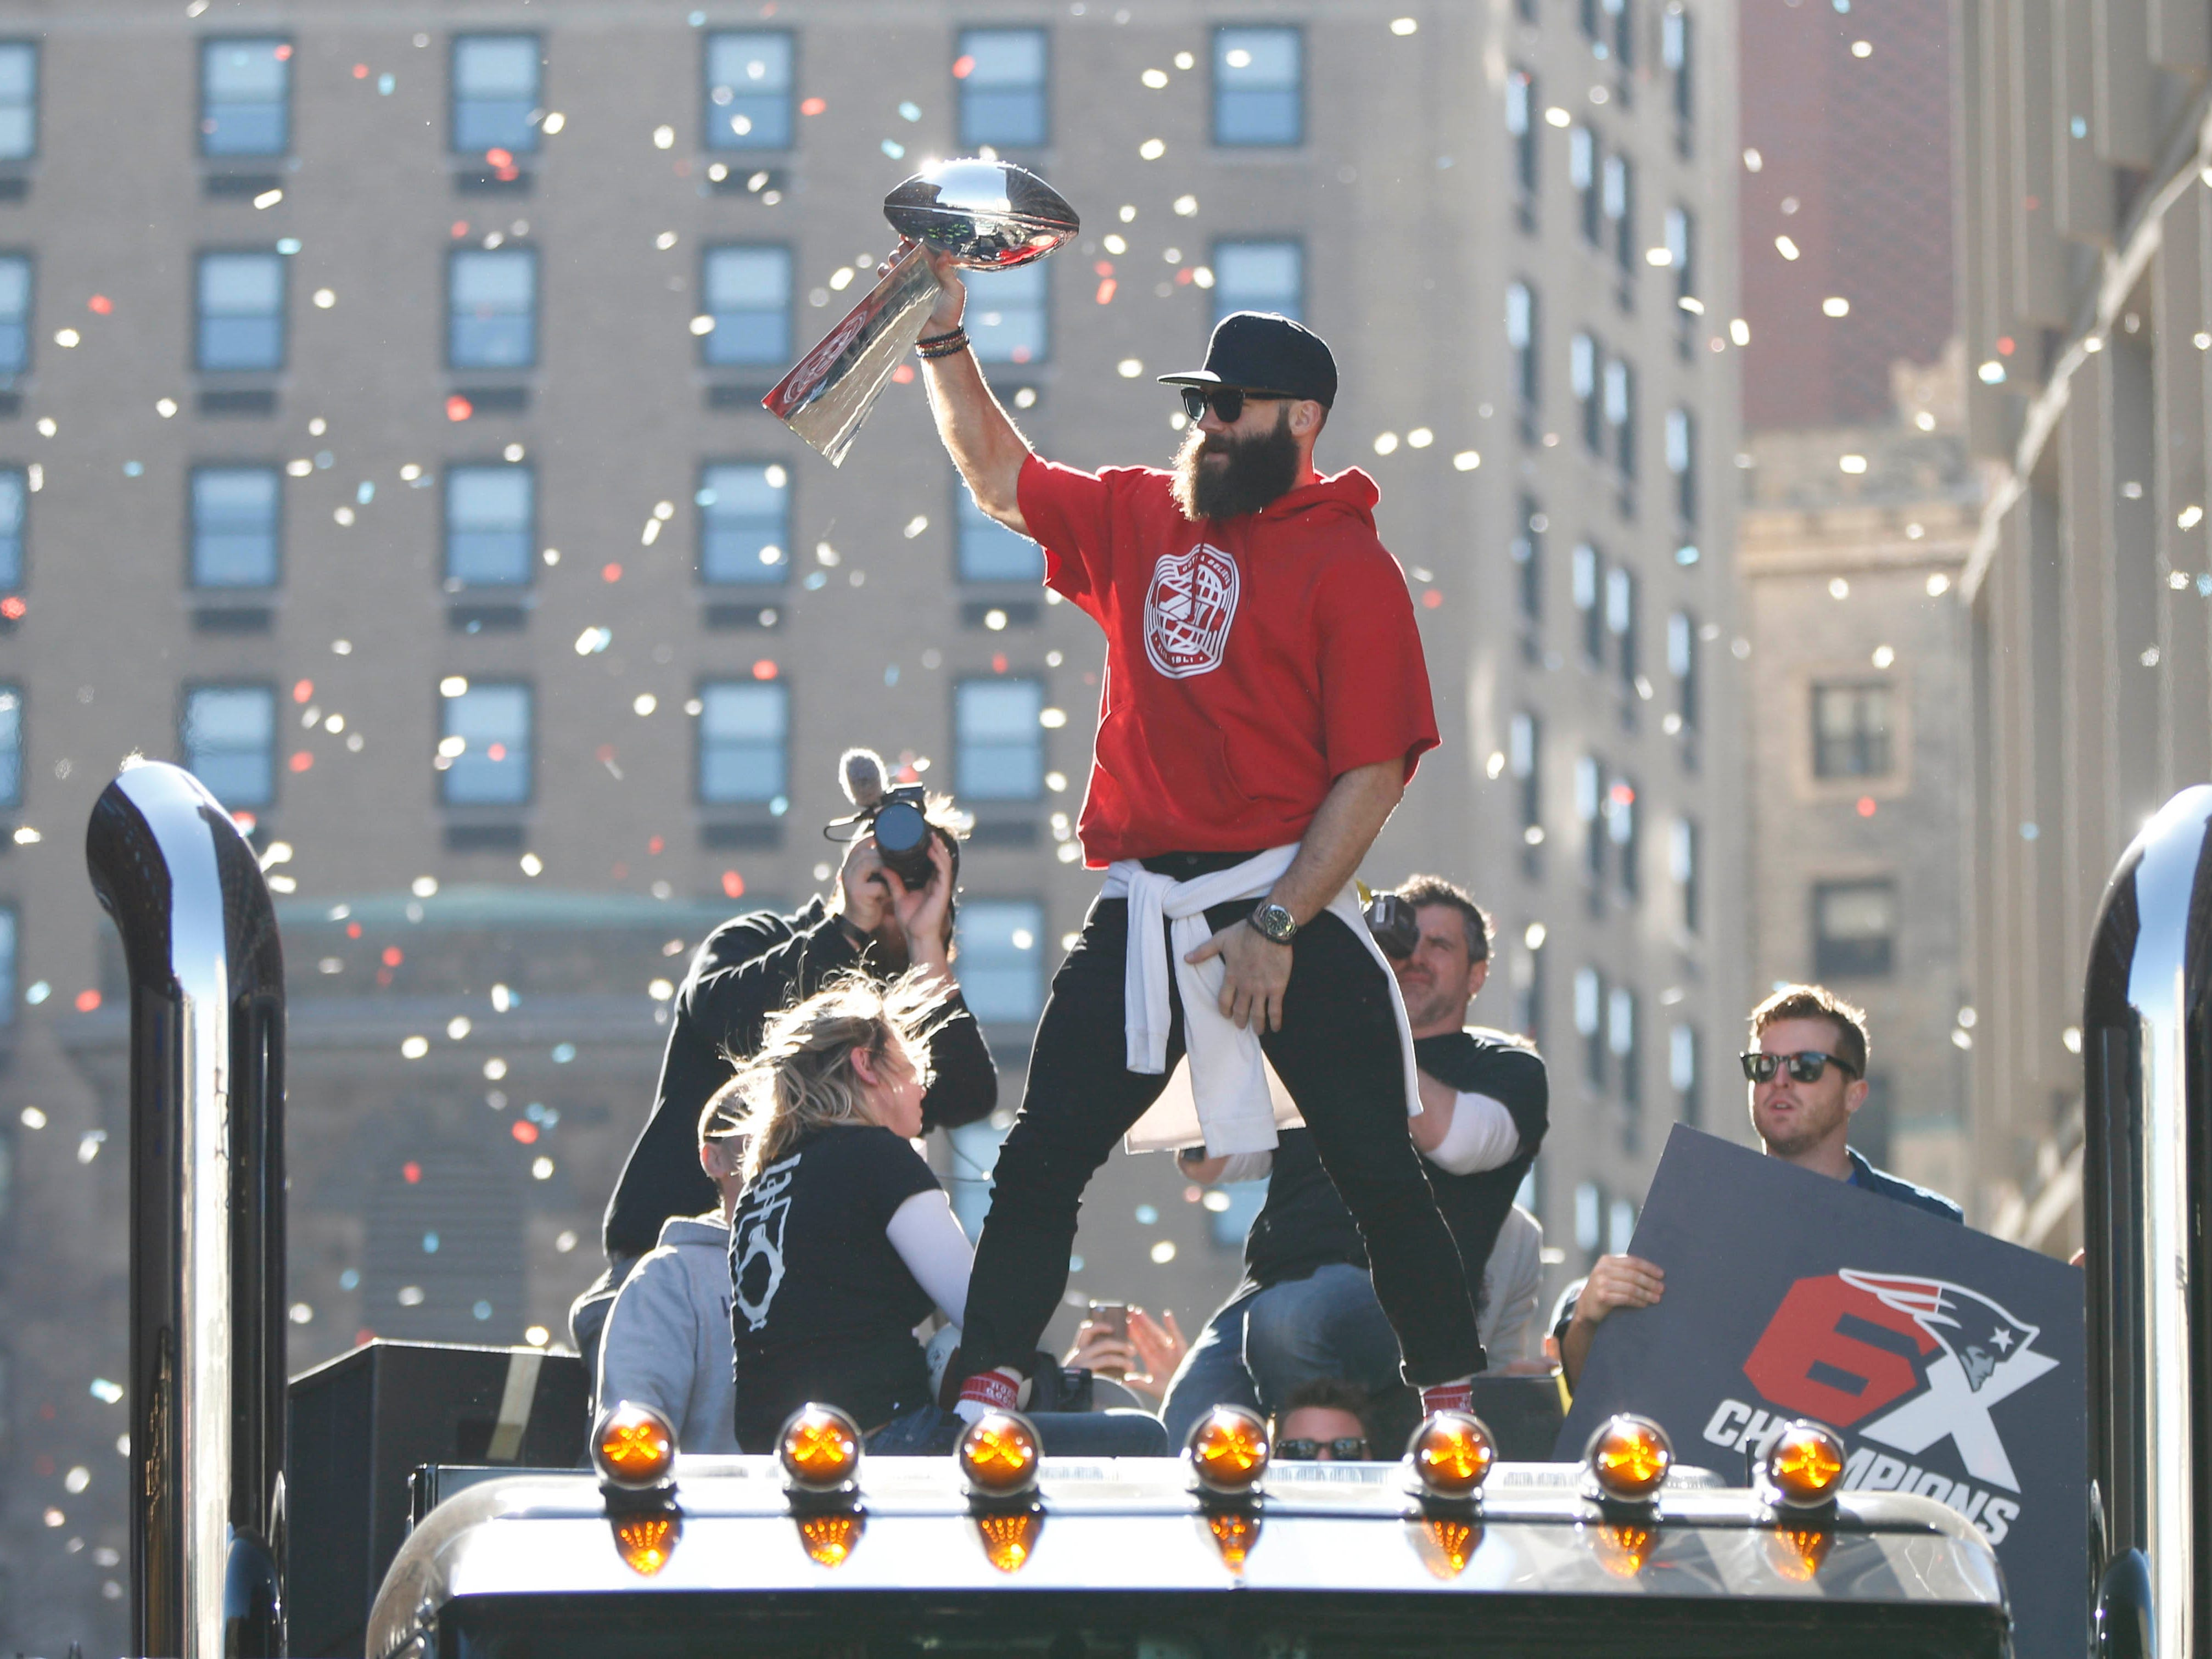 New England Patriots wide receiver Julian Edelman (11) celebrates with the Vince Lombardi Trophy during the Super Bowl LIII championship parade through downtown Boston.